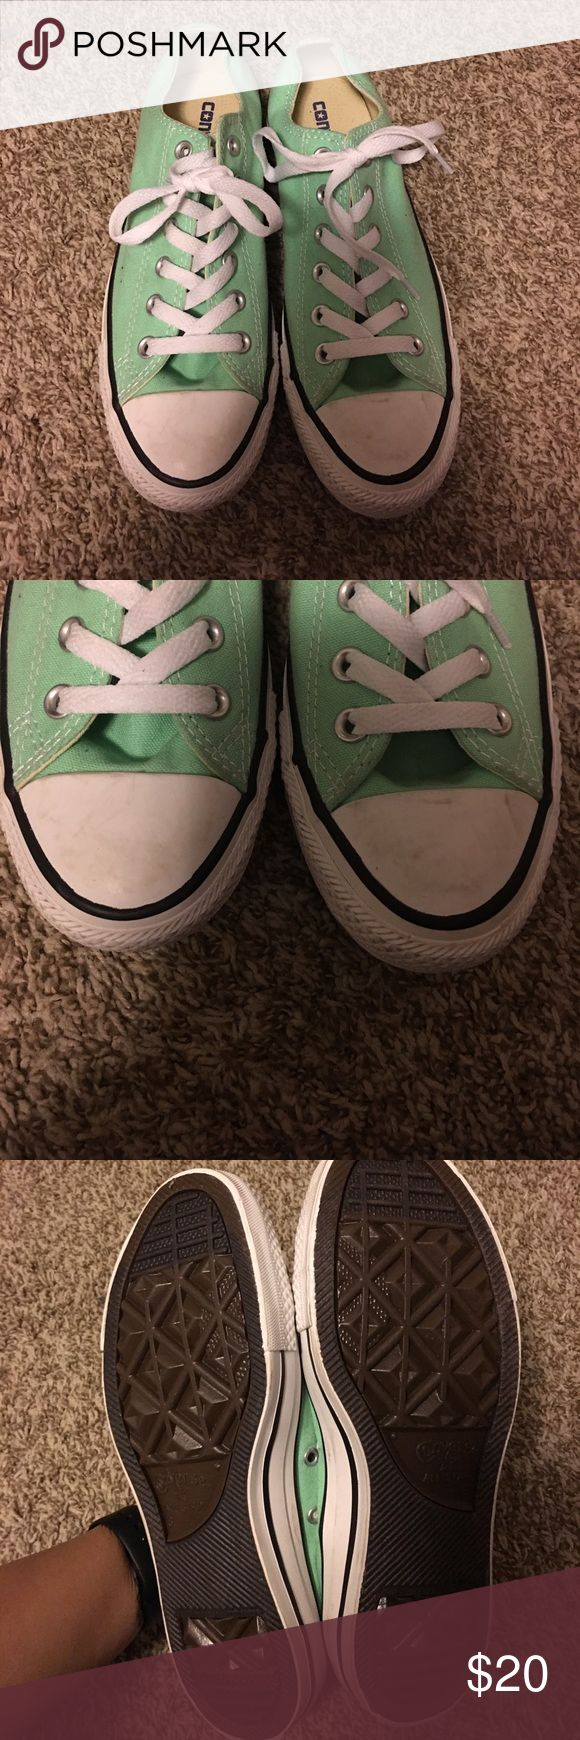 Tiffany blue converse Tiffany blue converse. Good condition. There are a few scuffs but cleanable and hardly noticeable. Women's size 8. Converse Shoes Sneakers